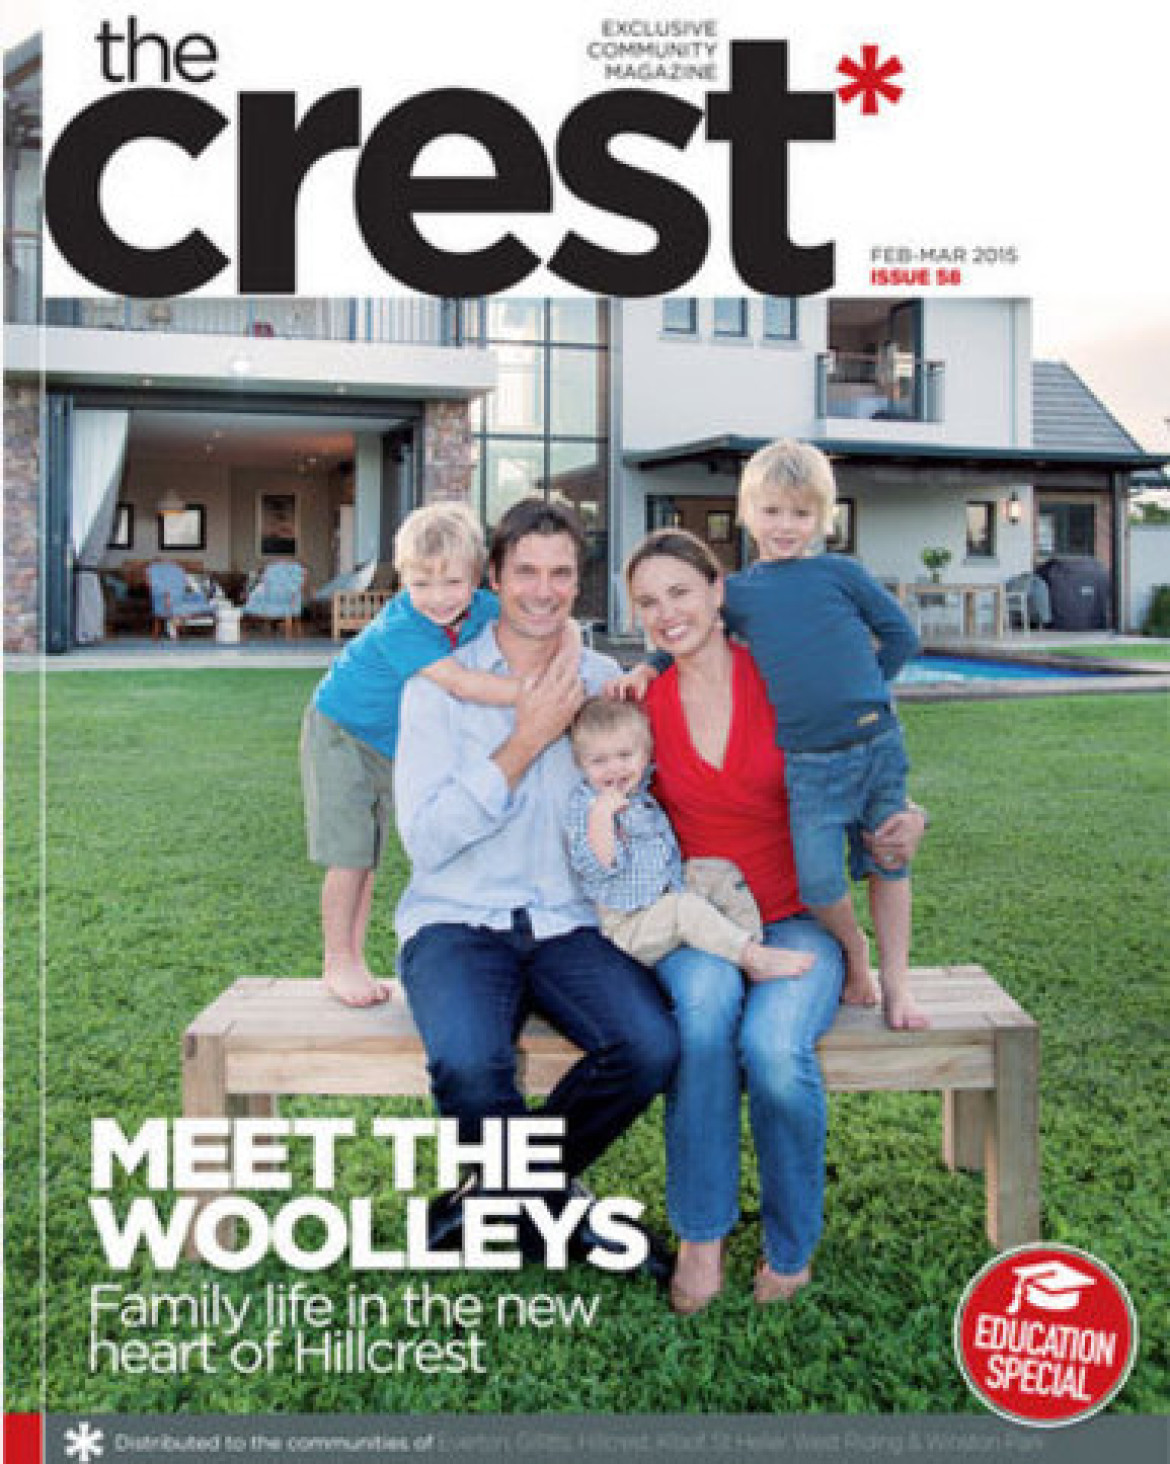 the crest - woolleys